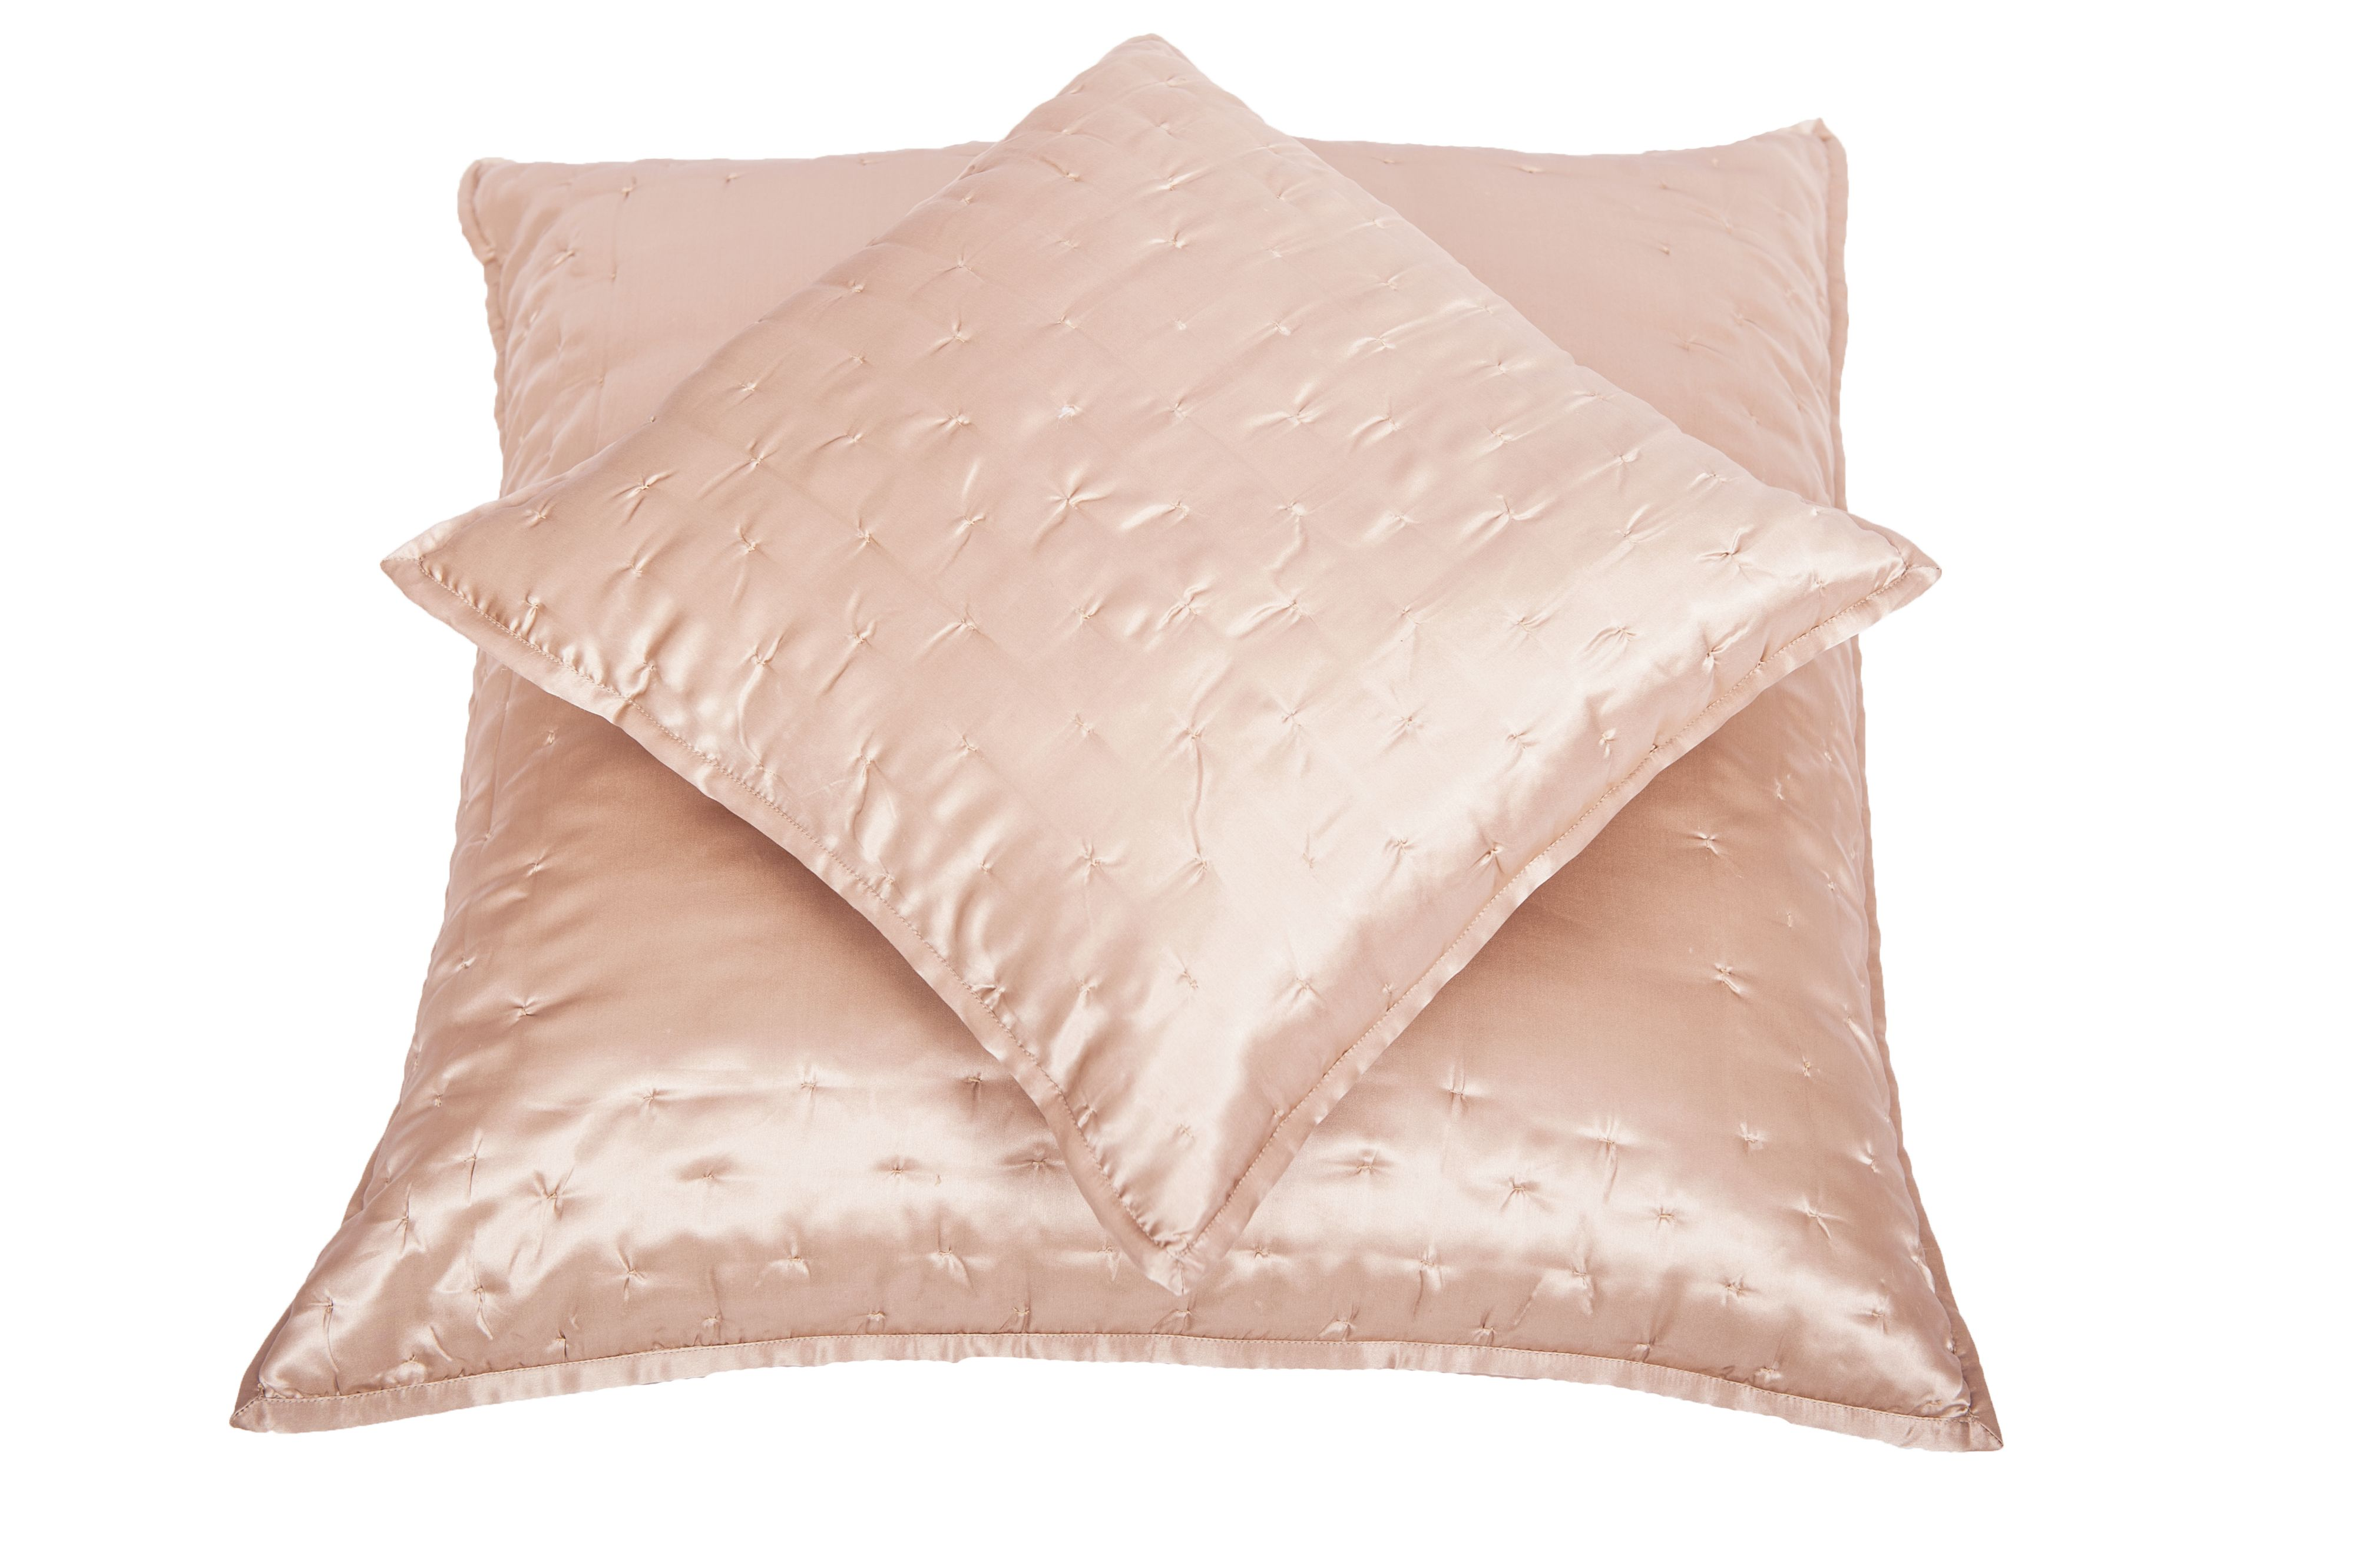 Dimple bedspreads and cushions in nude